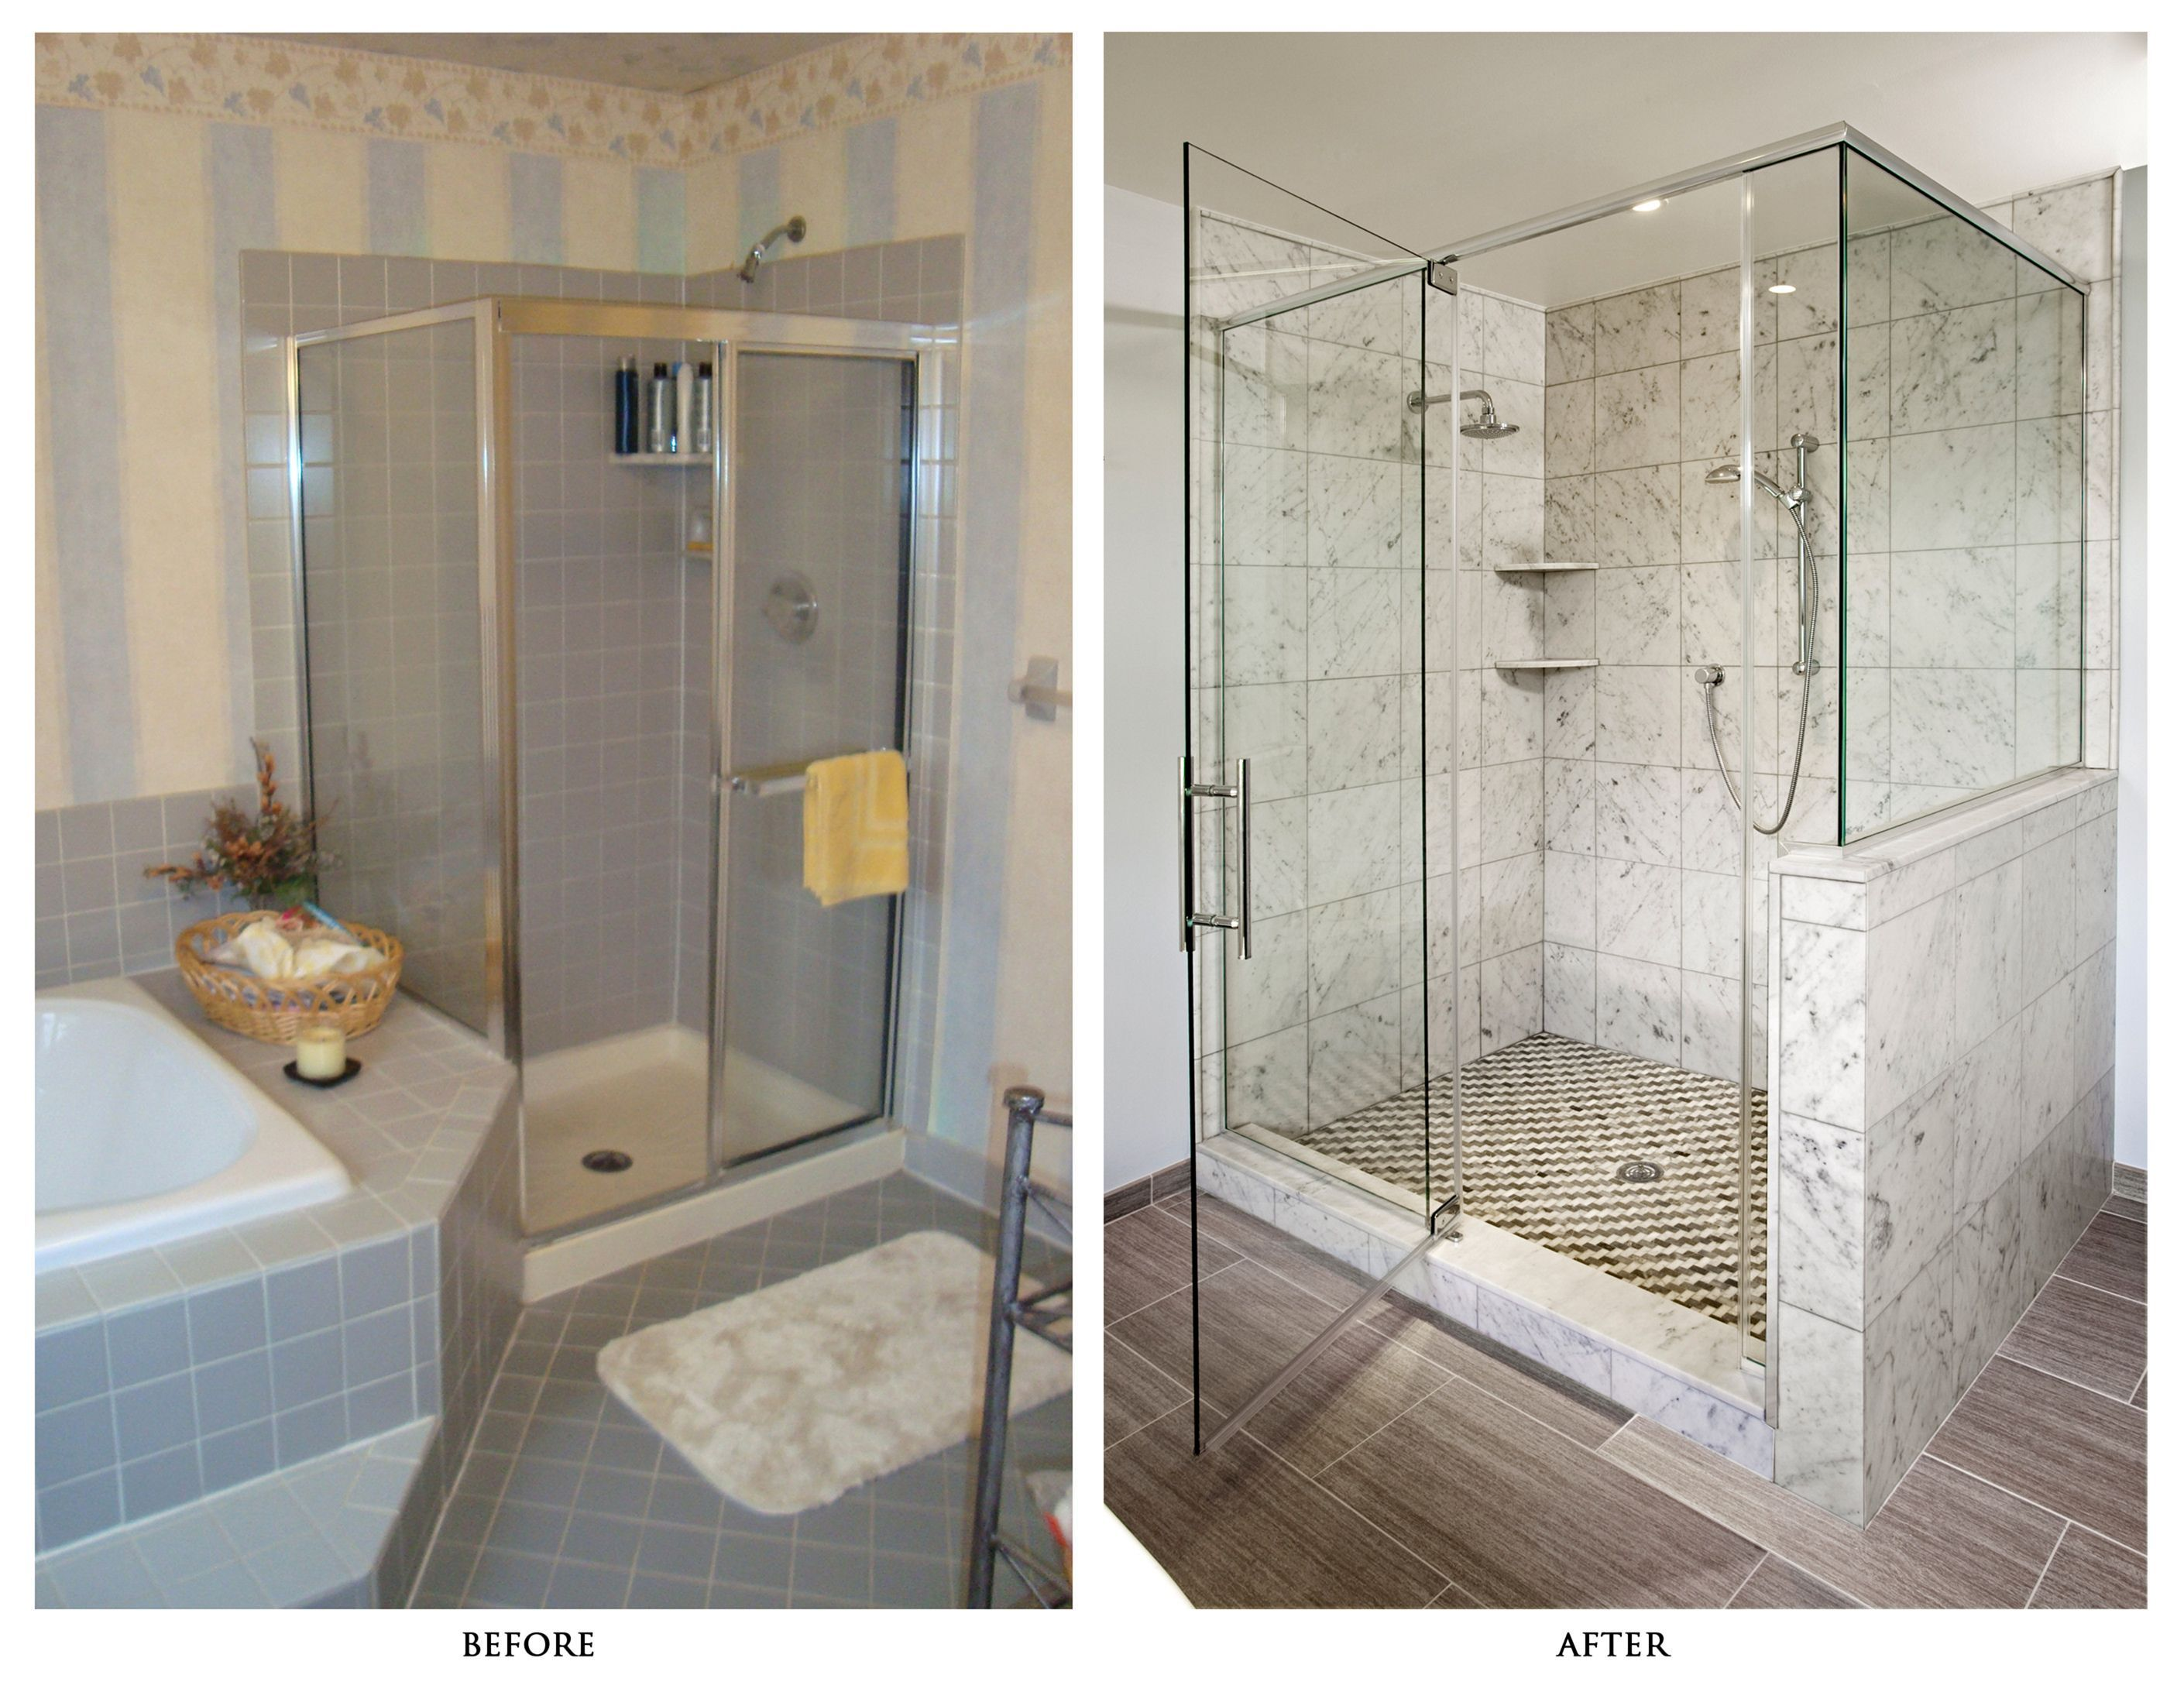 9 Best Bathroom Shower Remodel Ideas With Before And After Picture 3 In 2020 Small Bathroom Remodel Simple Bathroom Remodel Shower Remodel